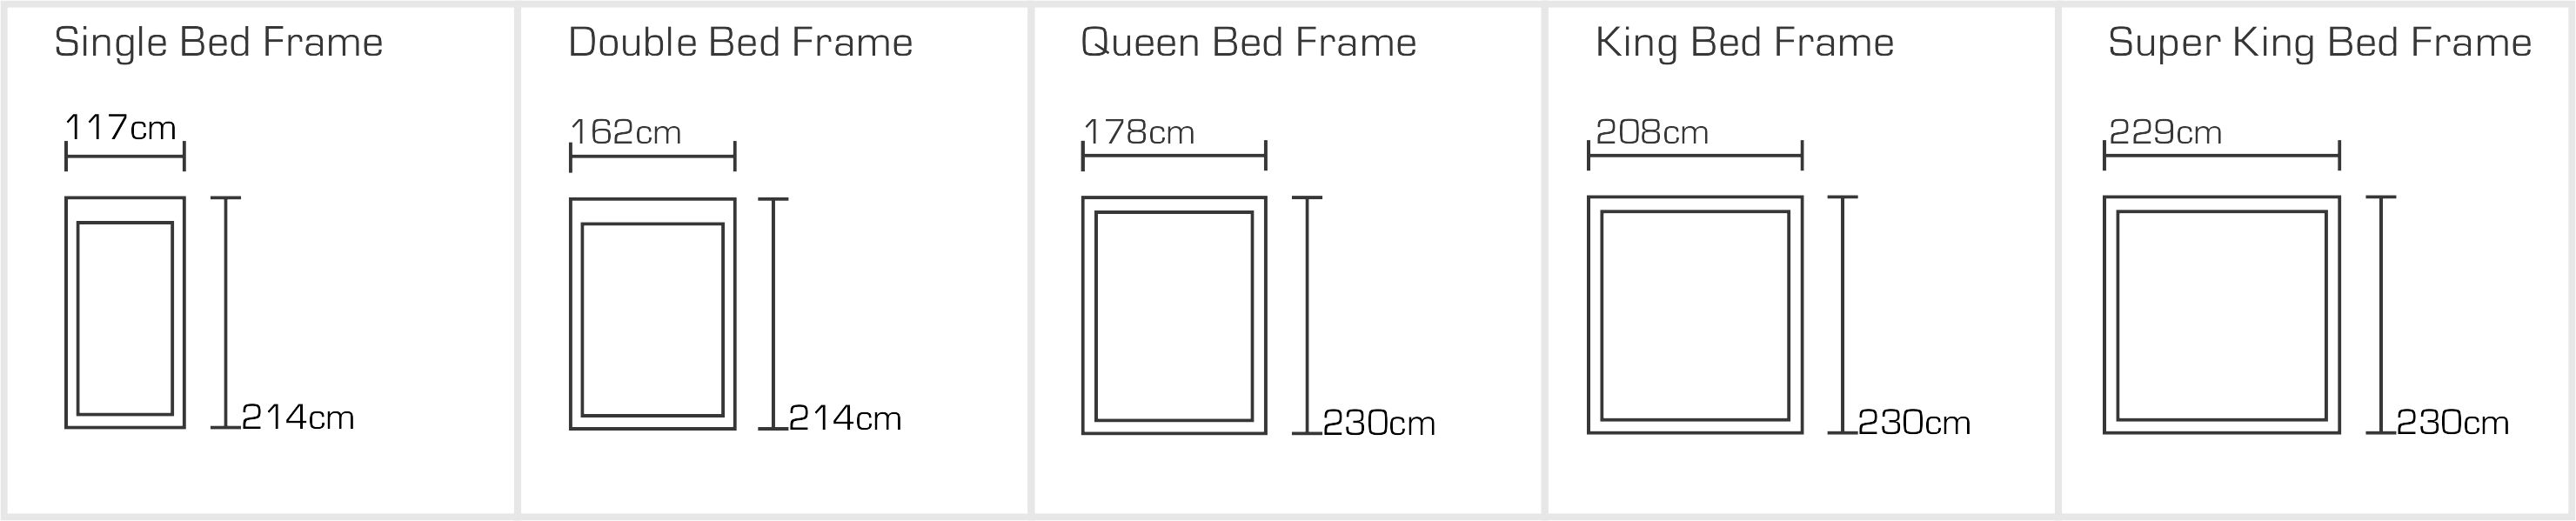 Windsor Bed Sizes